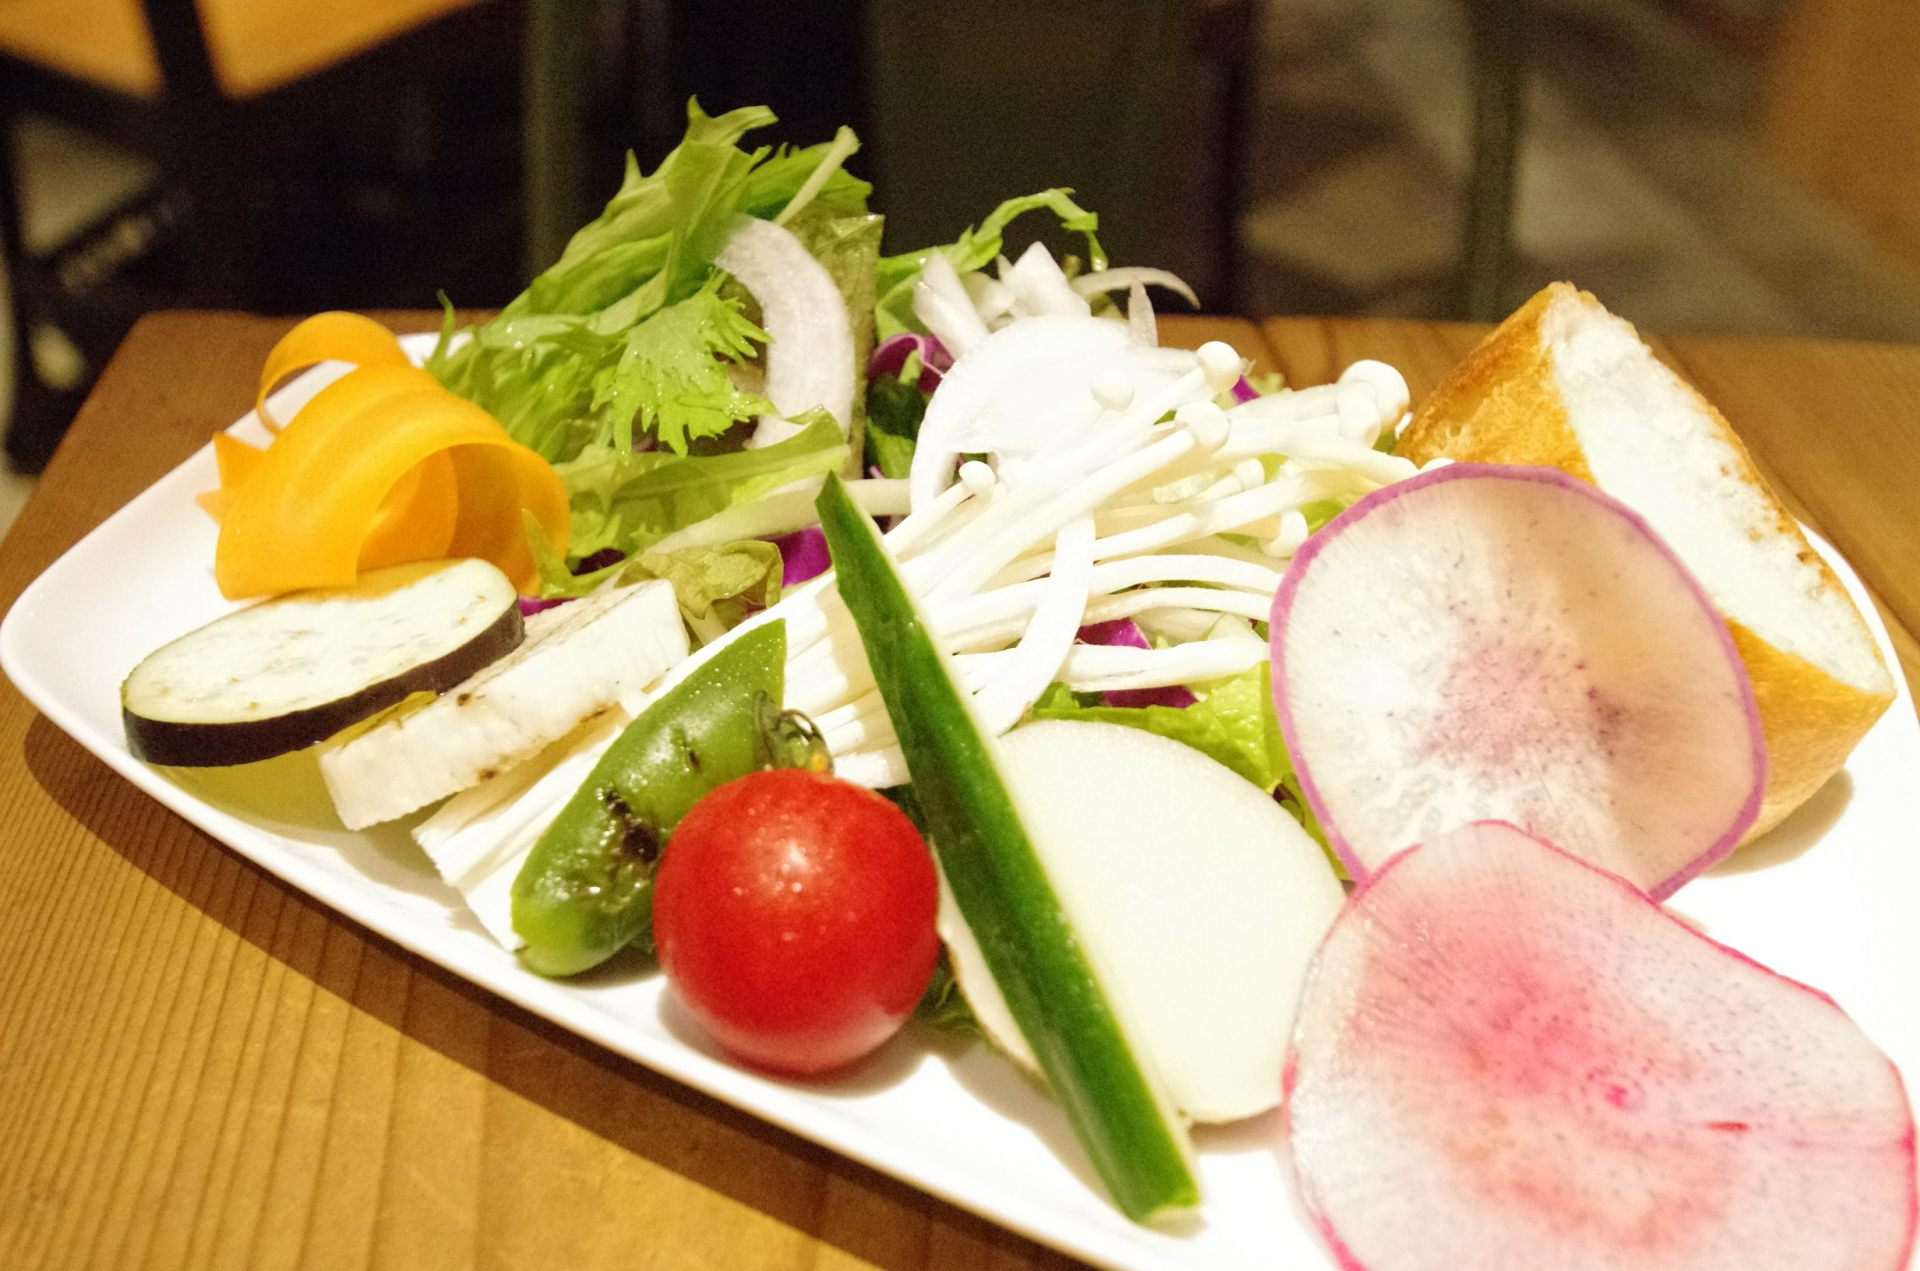 Side Salad with Lunch – Made with Locally-Sourced Vegetables